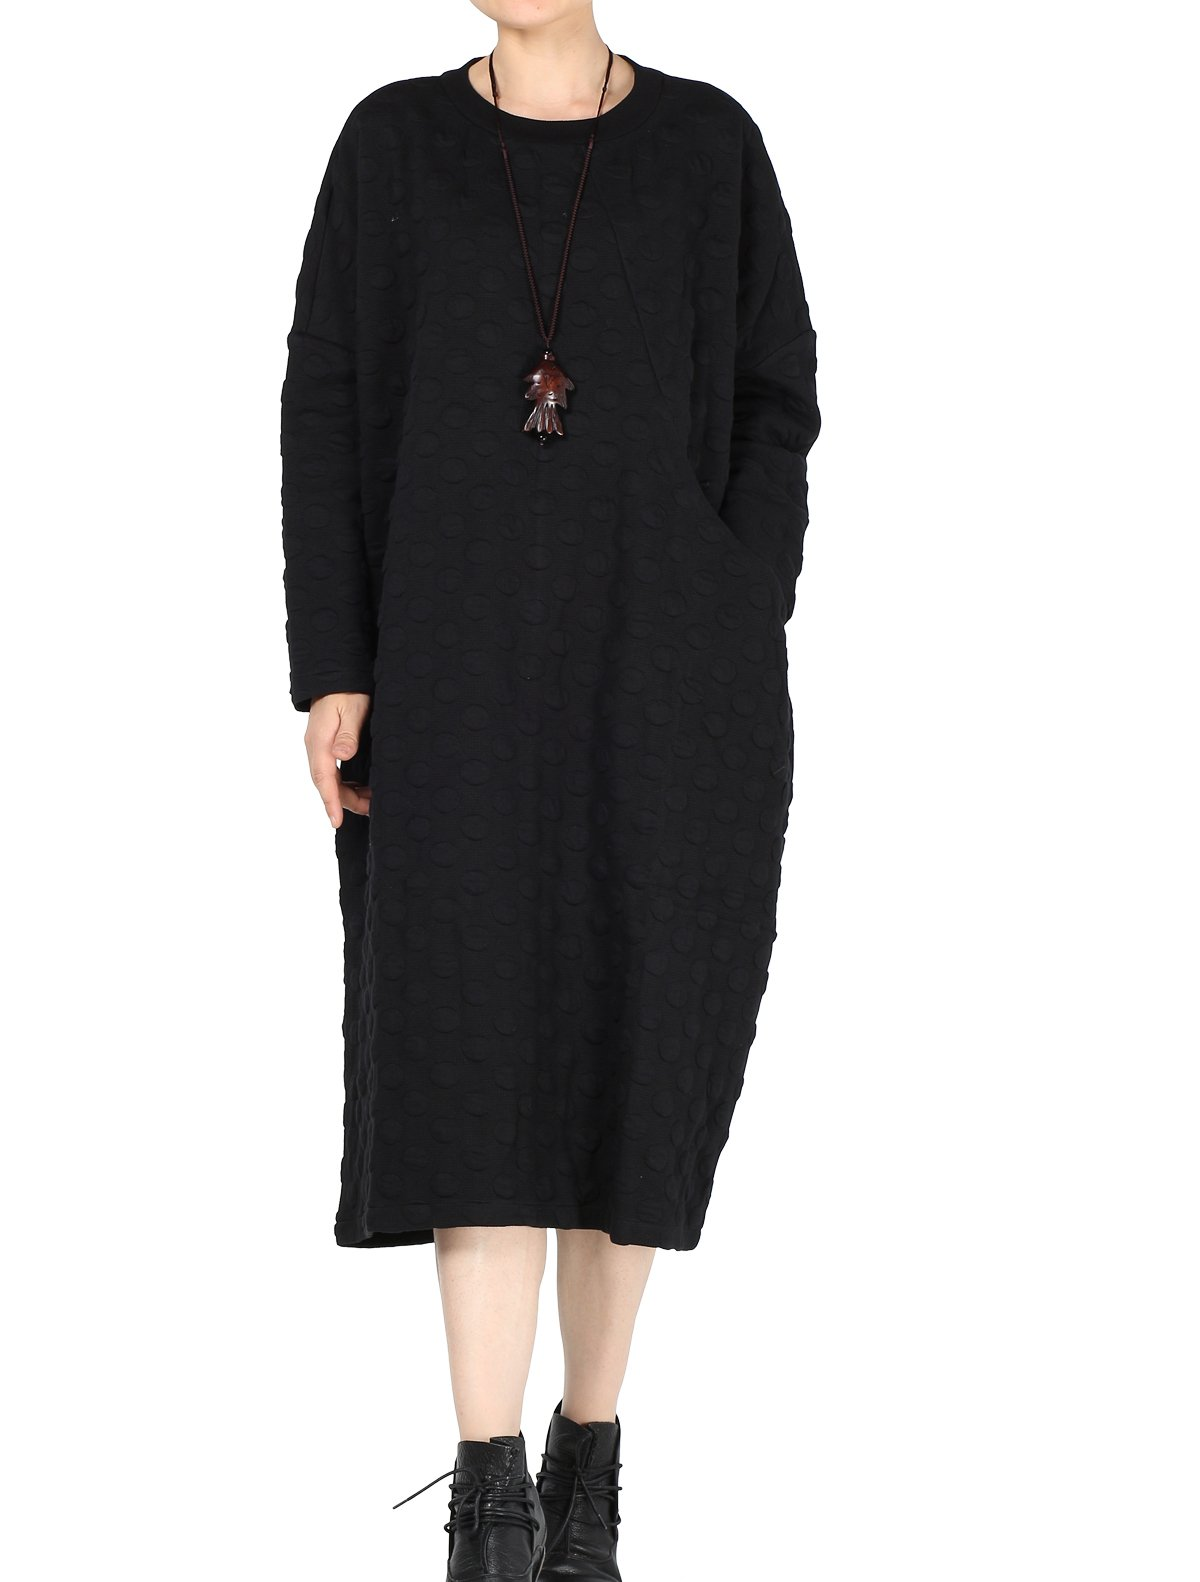 Mordenmiss Women's Loose Fit Basic Solid Pullover Tops Dresses Style 5-L-Black B-2-A3-18